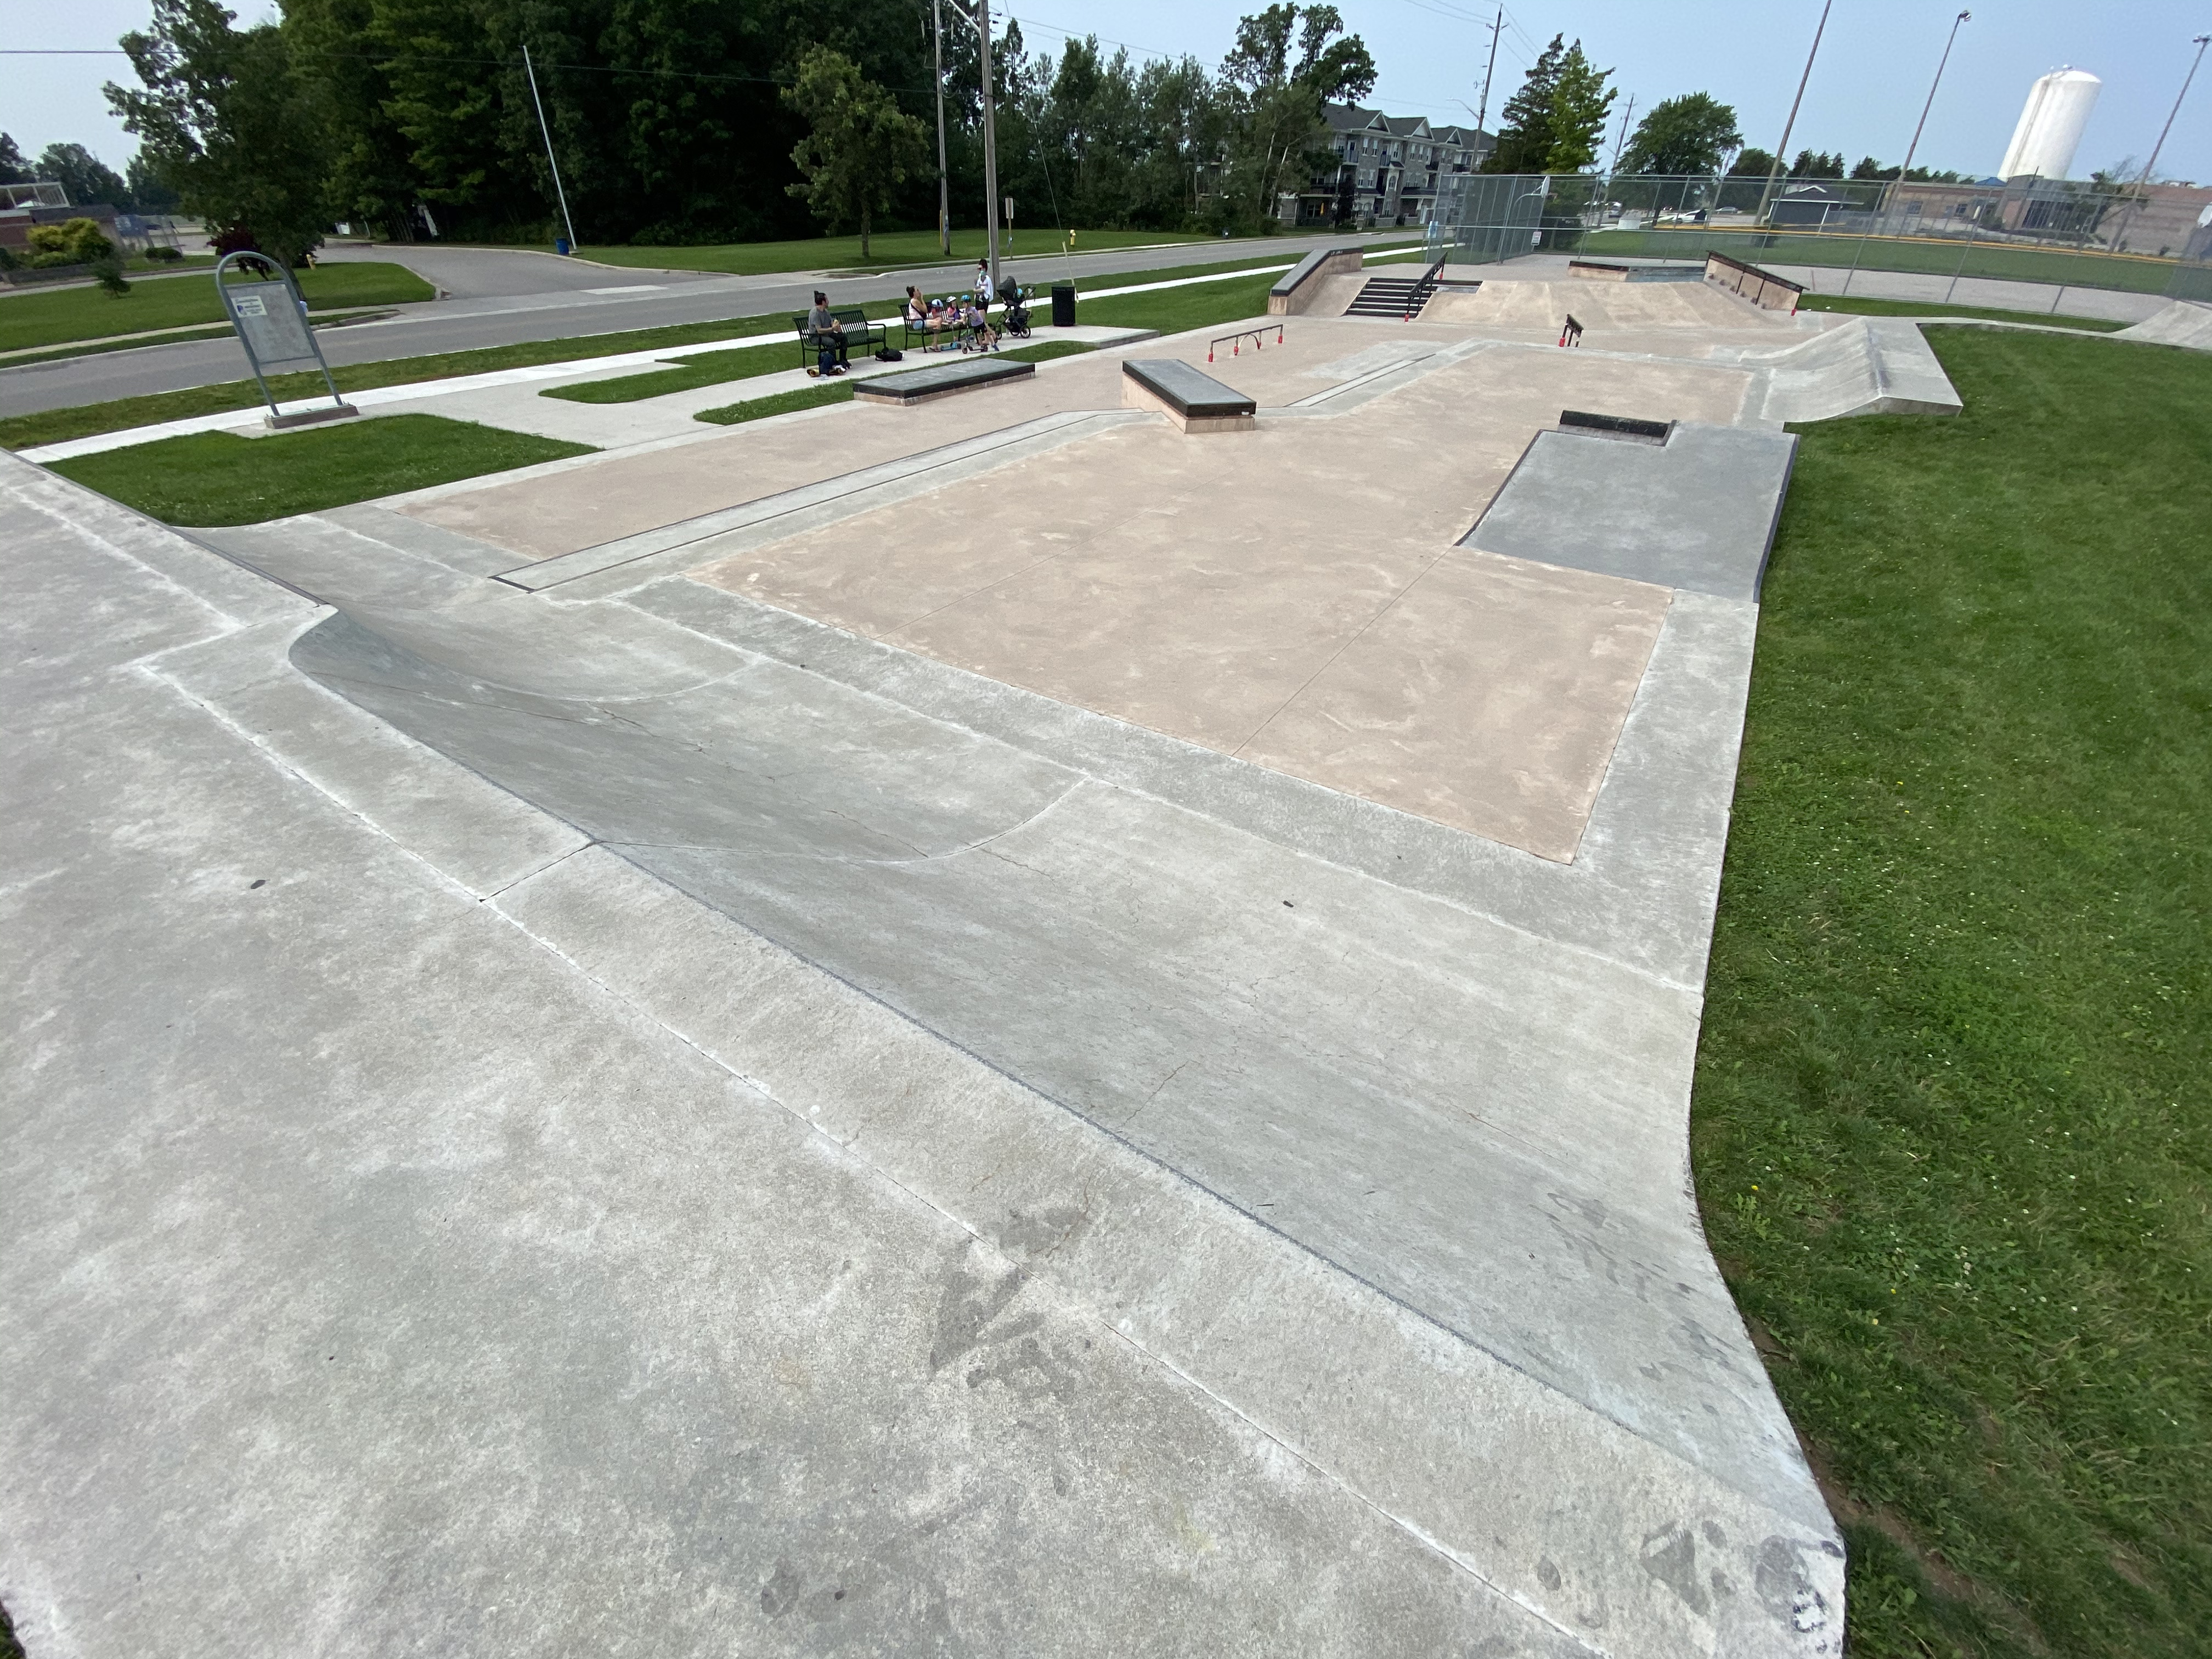 Caledonia Skatepark from the right side looking across the entire park